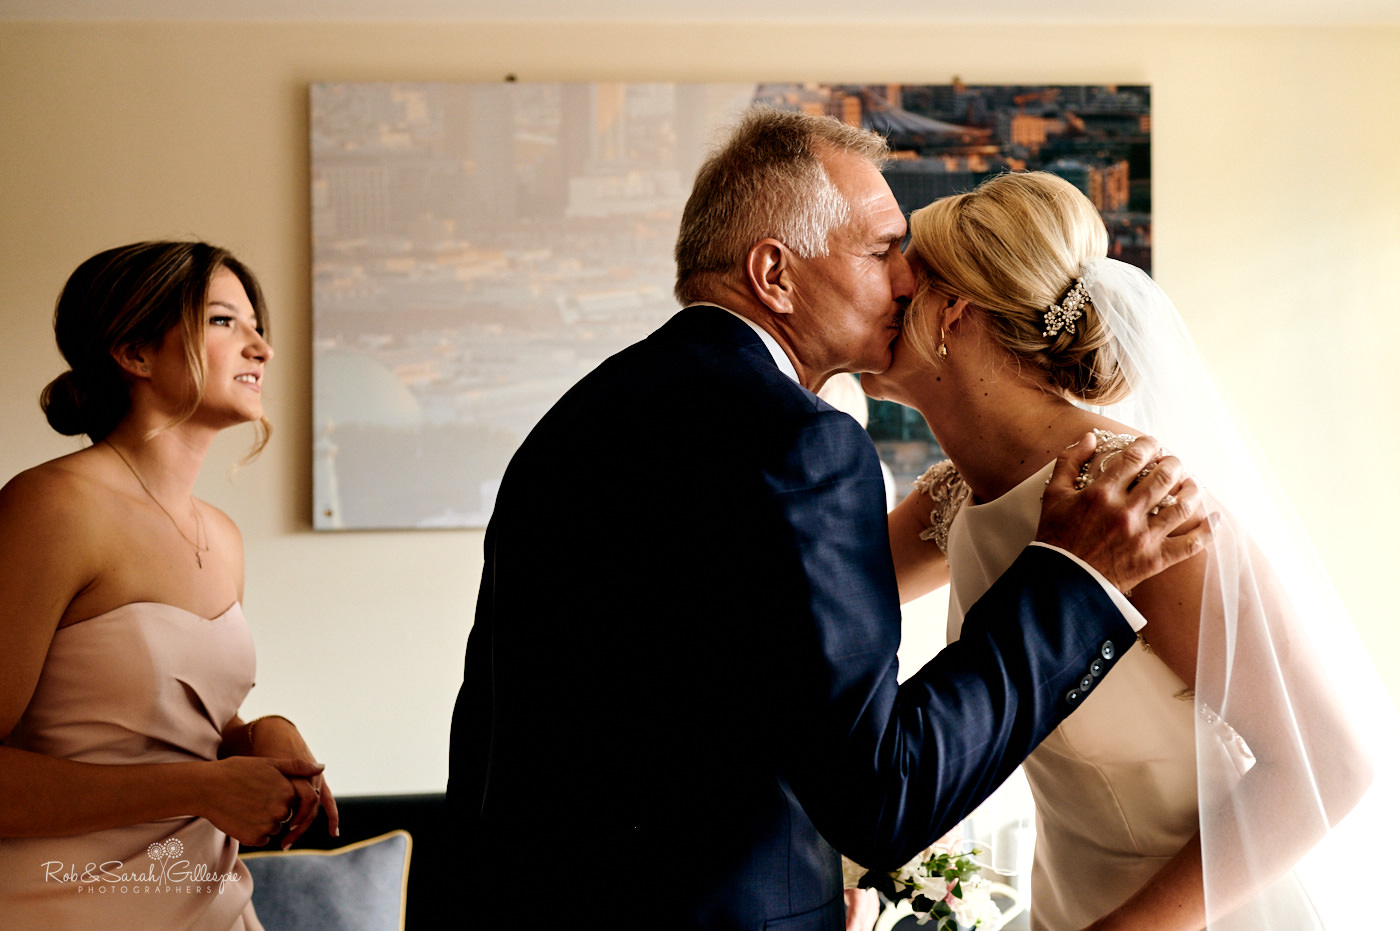 Bride's father kisses his daughter while preparing for wedding